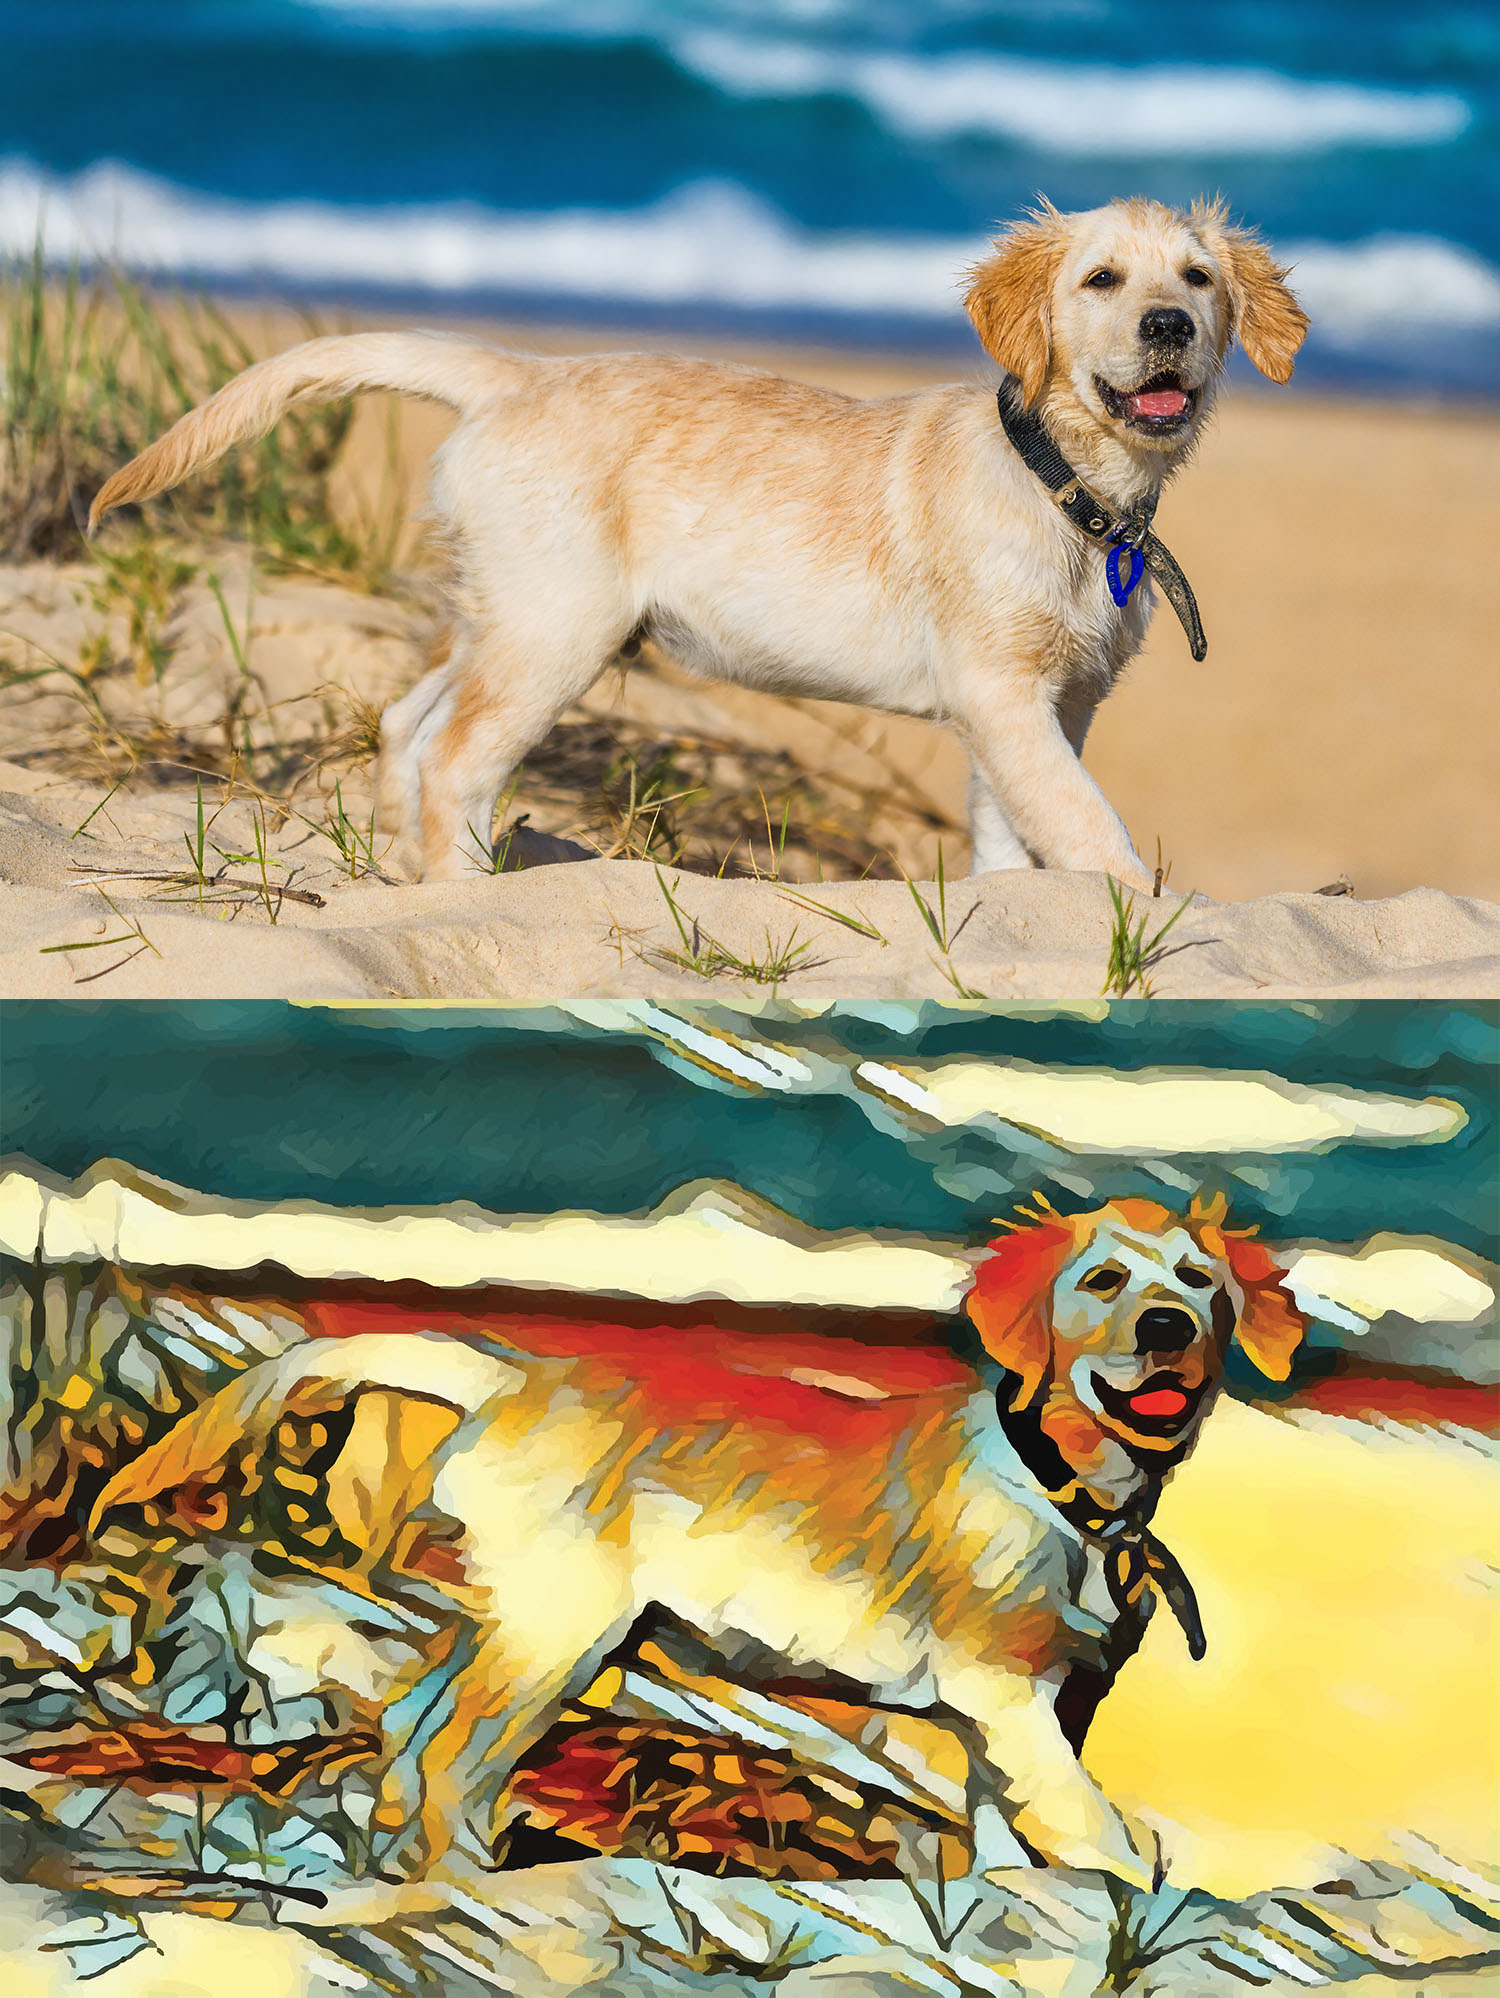 Before and after stylized image of a golden retriever puppy on a beach